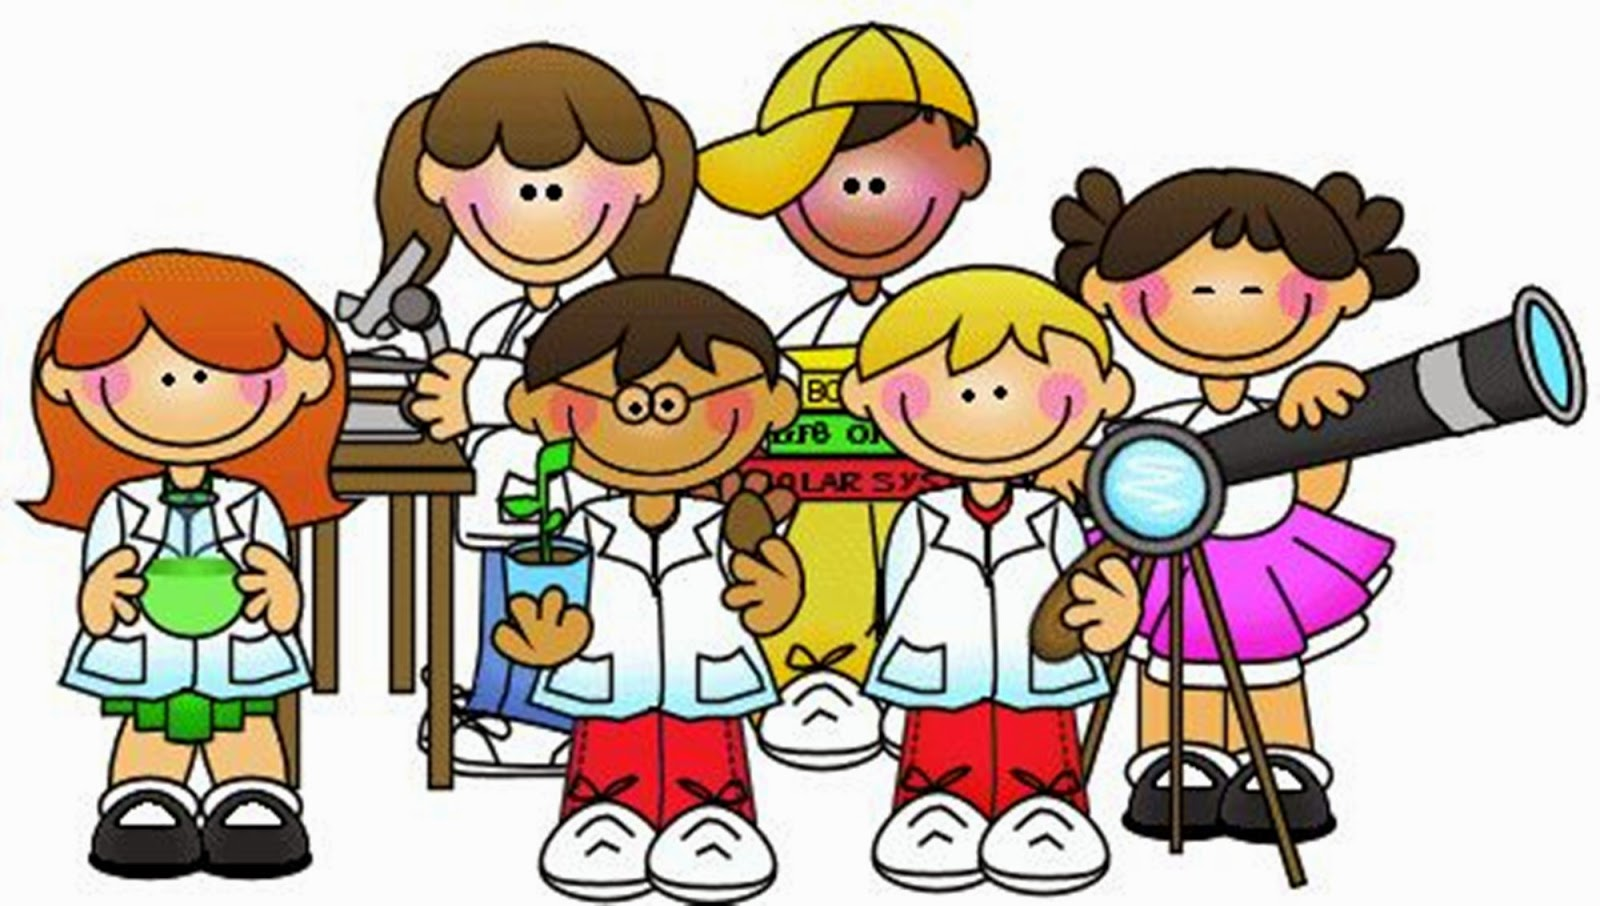 science fun experiment kid learn clipart clip scientist children game ciencias ciencia para imagenes preescolar dibujos primaria experiments lab experimentos